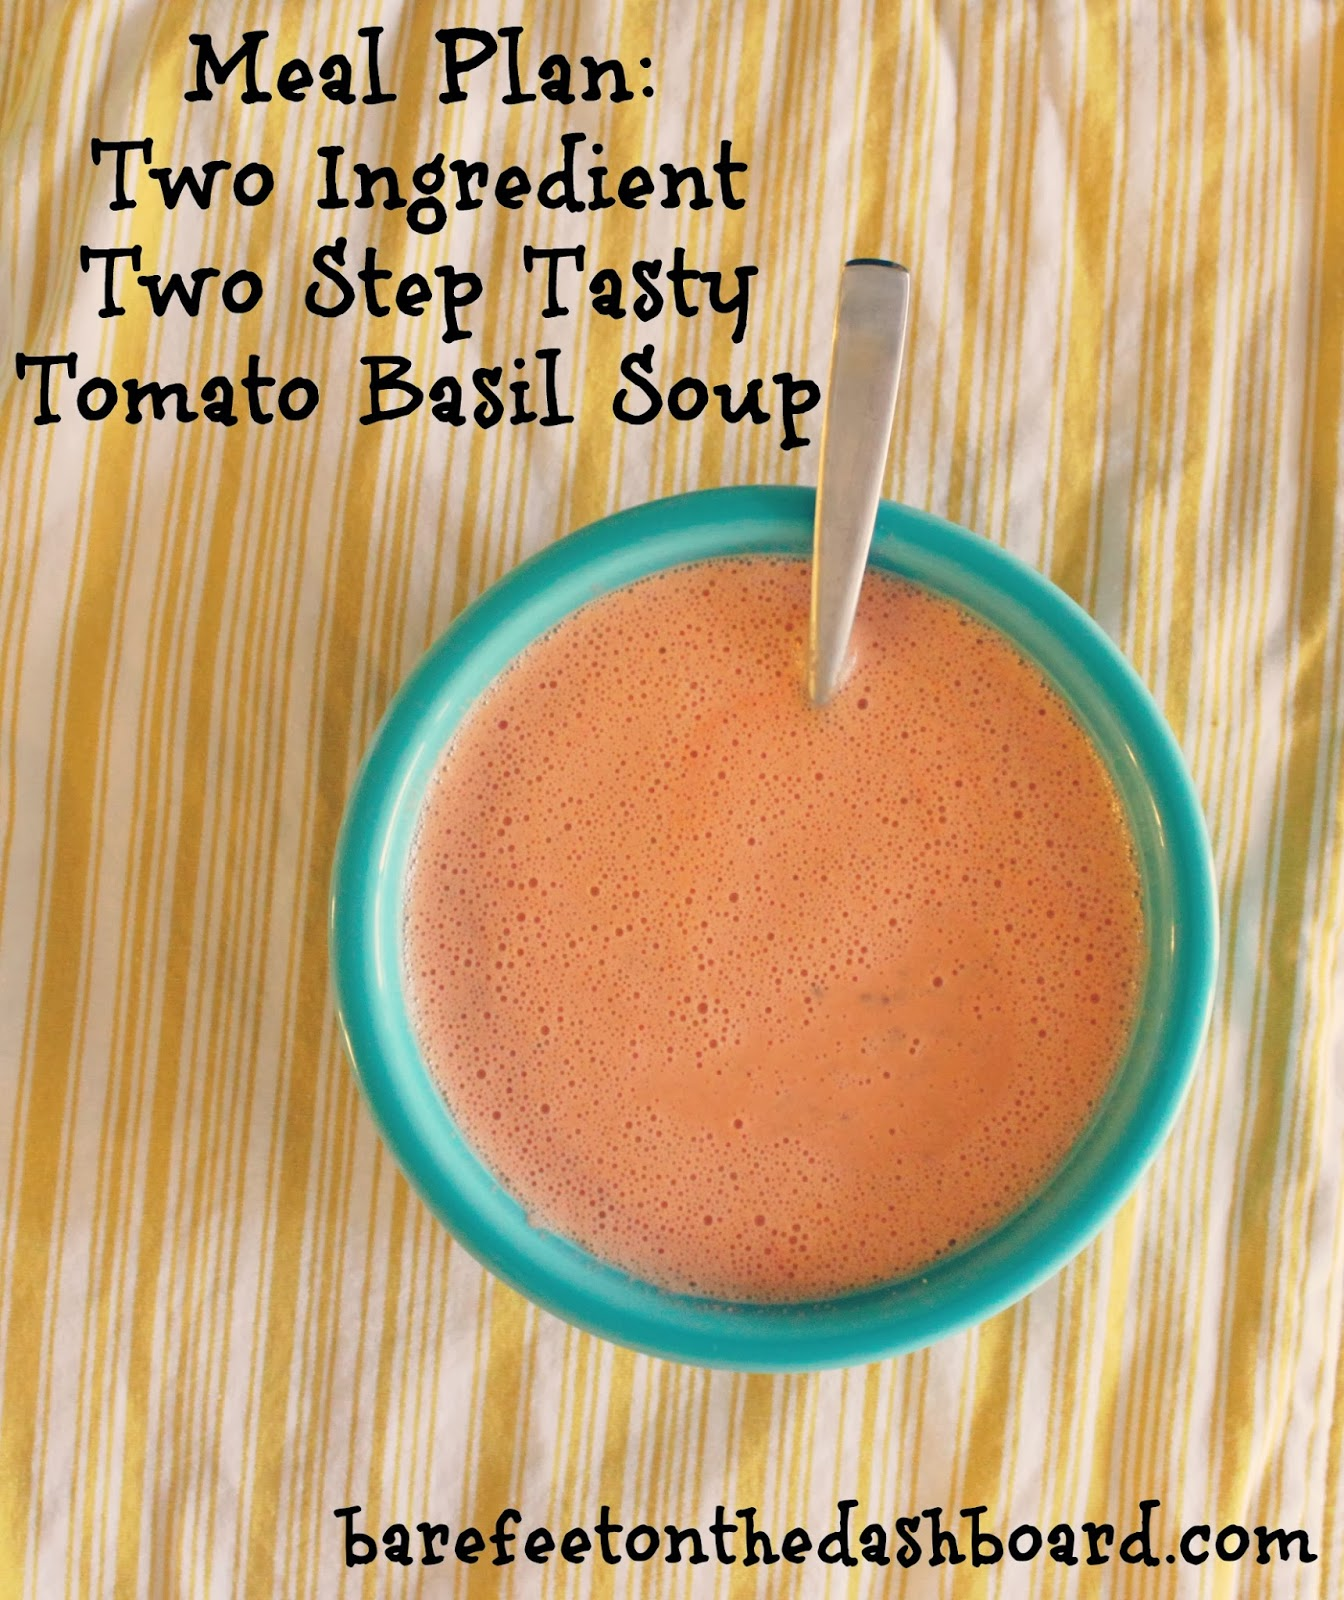 meal plan two ingredient two step tasty tomato basil soup a bonus